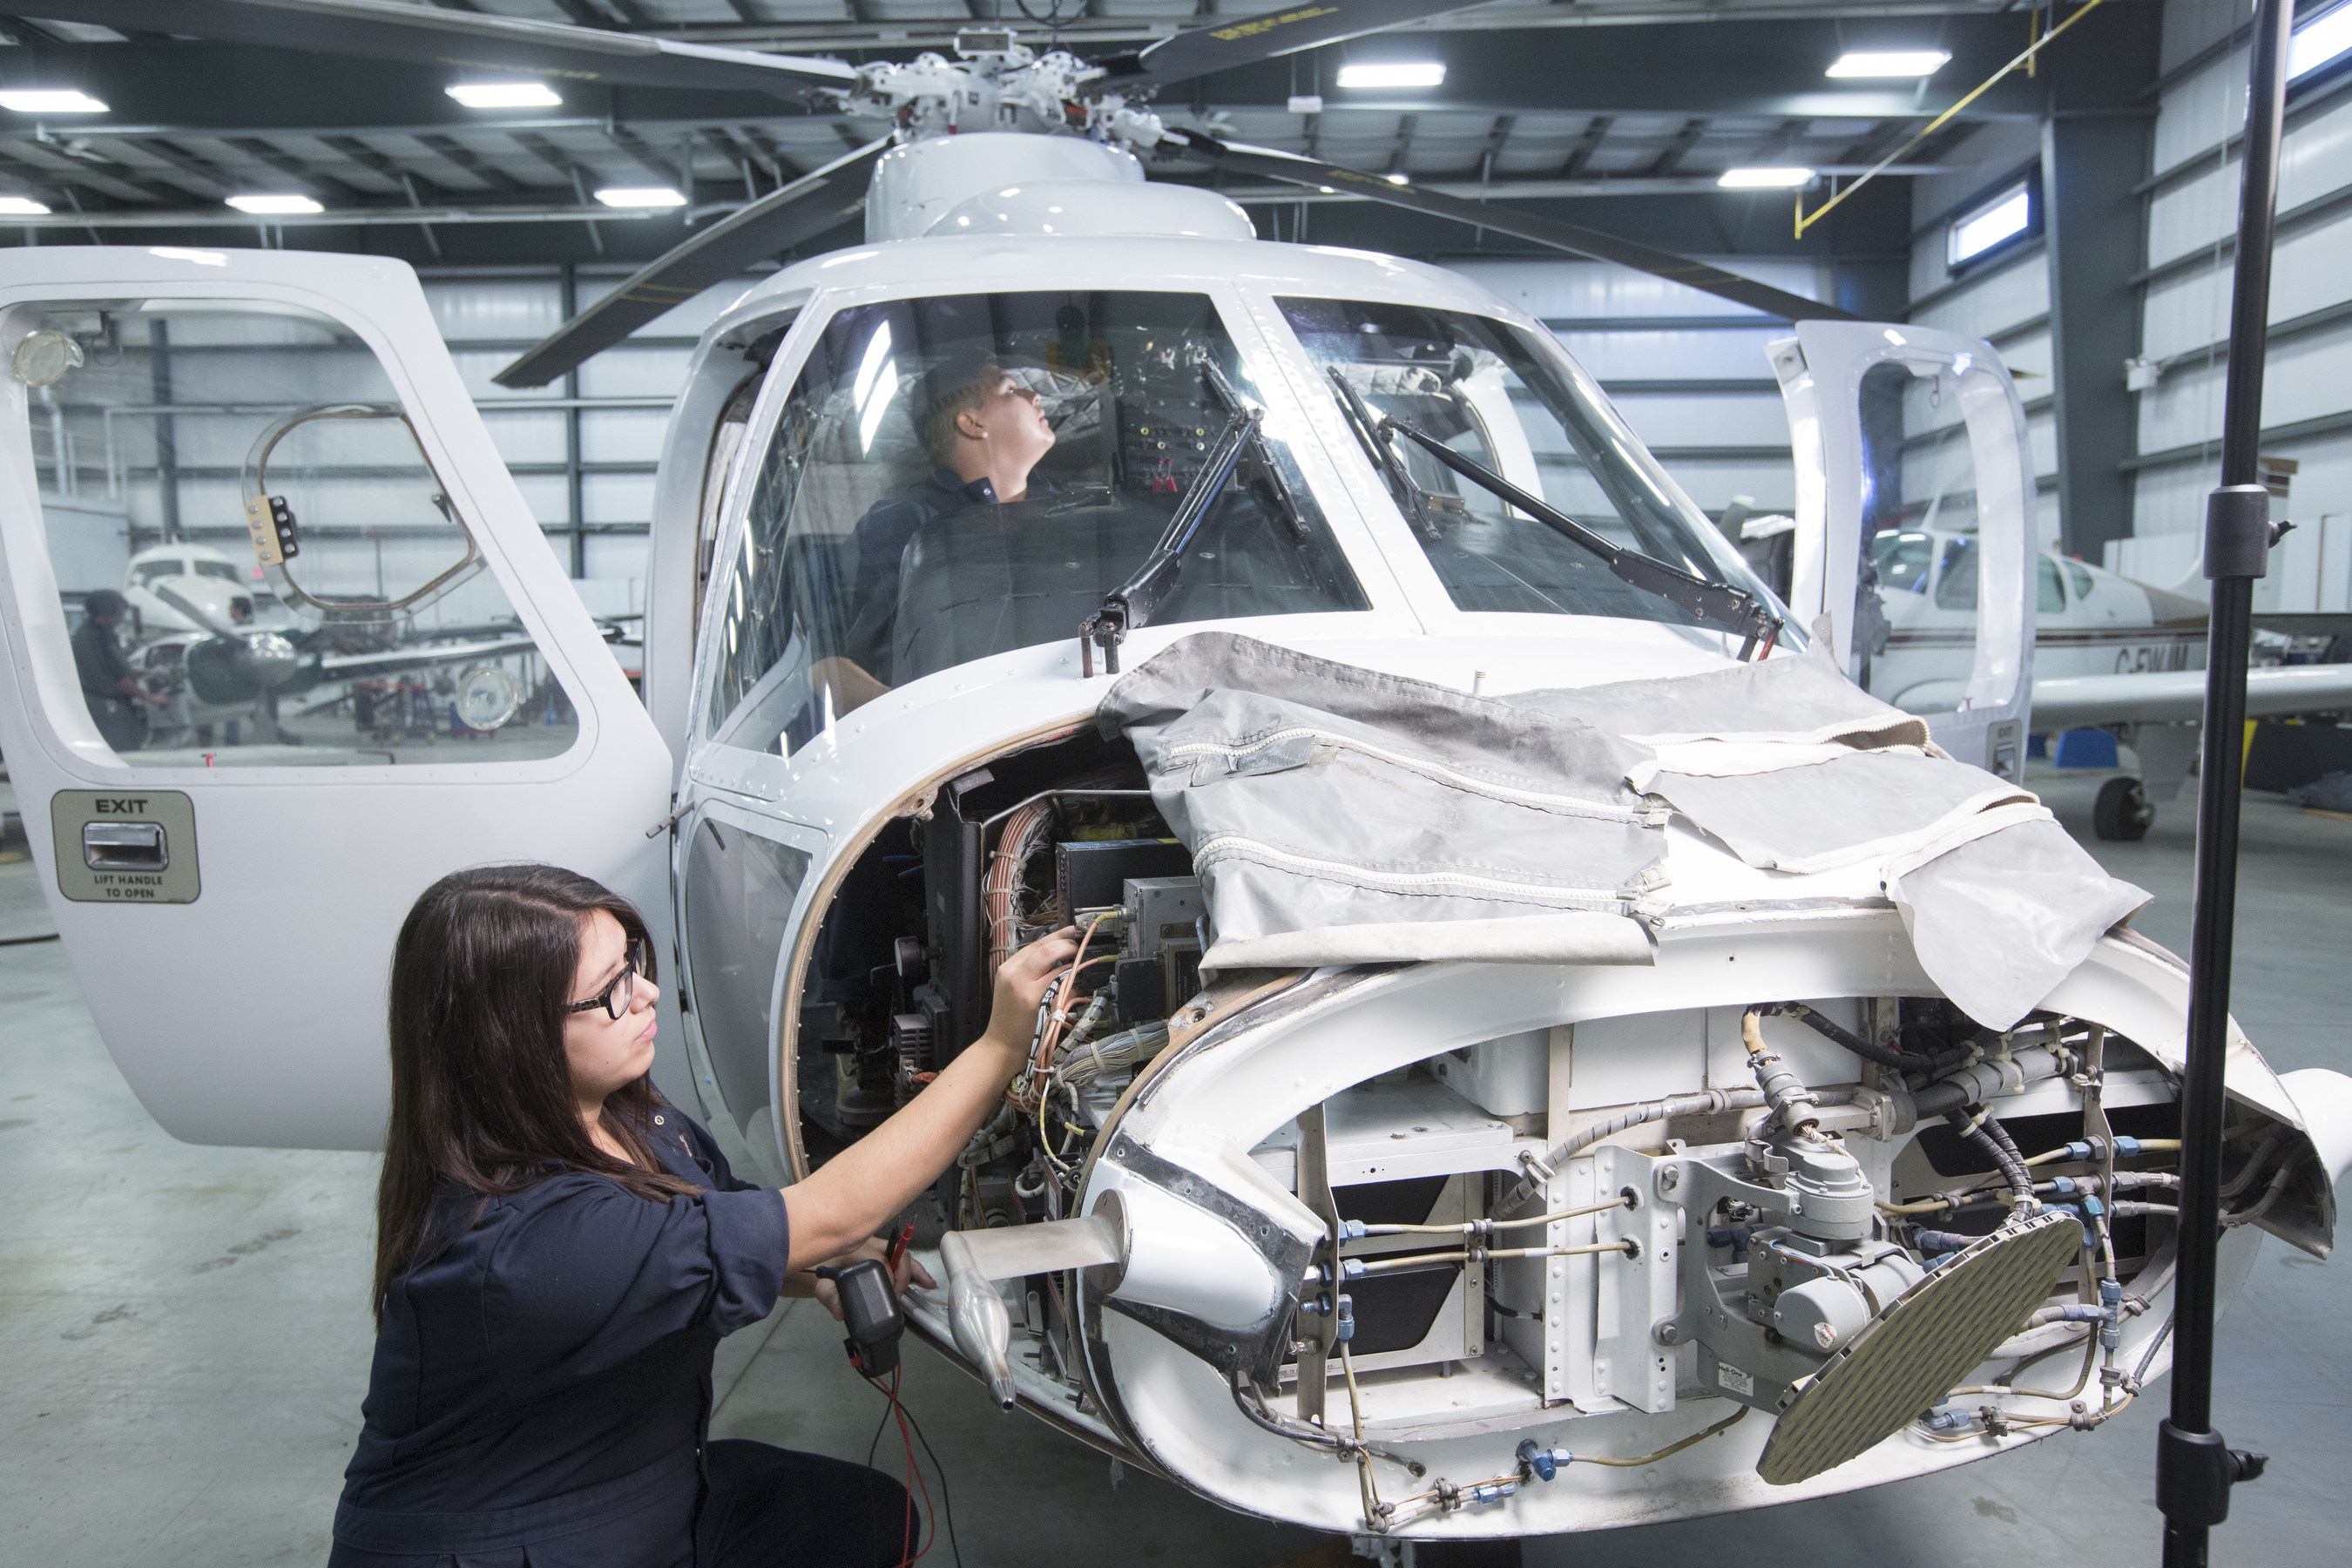 Transfer of the S-76A helicopter maintenance trainer to Saskatchewan Indian Institute of Technologies in Saskatoon, Canada, fulfills a portion of Sikorsky's Industrial and Regional Benefits obligations for a fleet of 28 new CH-148 Cyclone maritime helicopters for the Royal Canadian Air Force. The S-76A helicopter was converted to a maintenance trainer after being withdrawn from active flight status in 2015 having performed 26,291 hours in flight, and 16,723 landings since 1980.